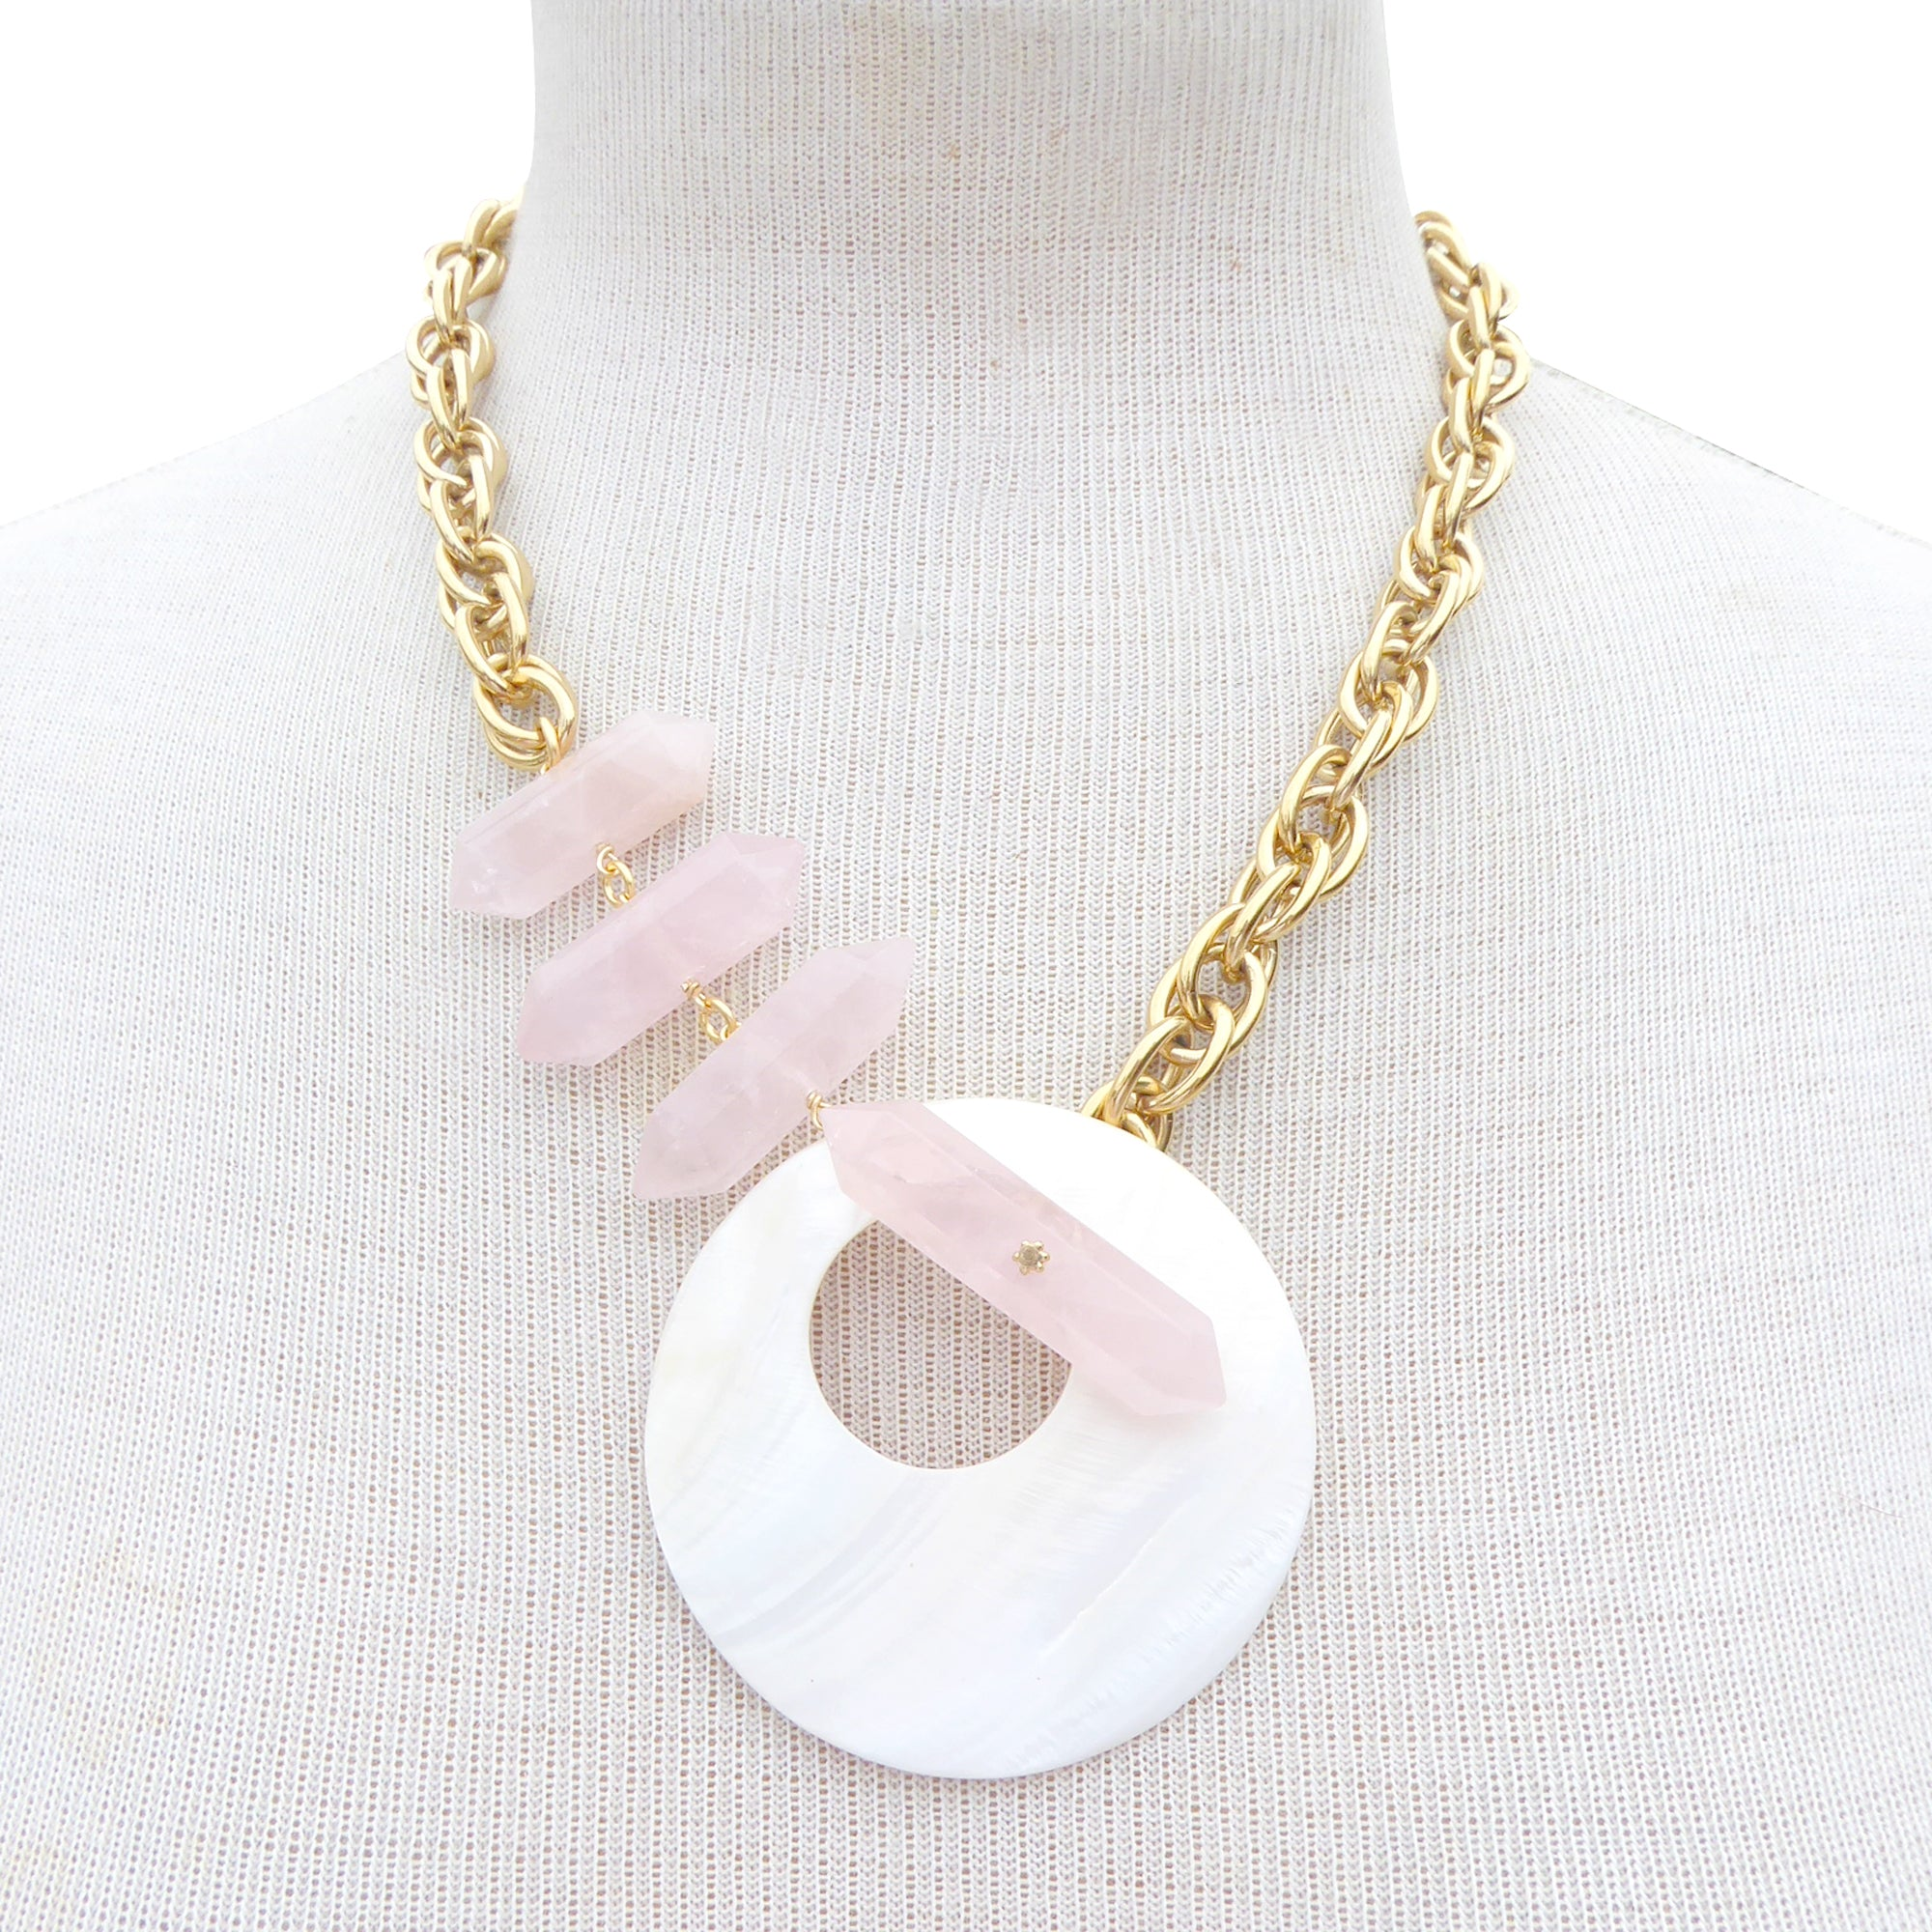 Marna rose quartz and shell necklace